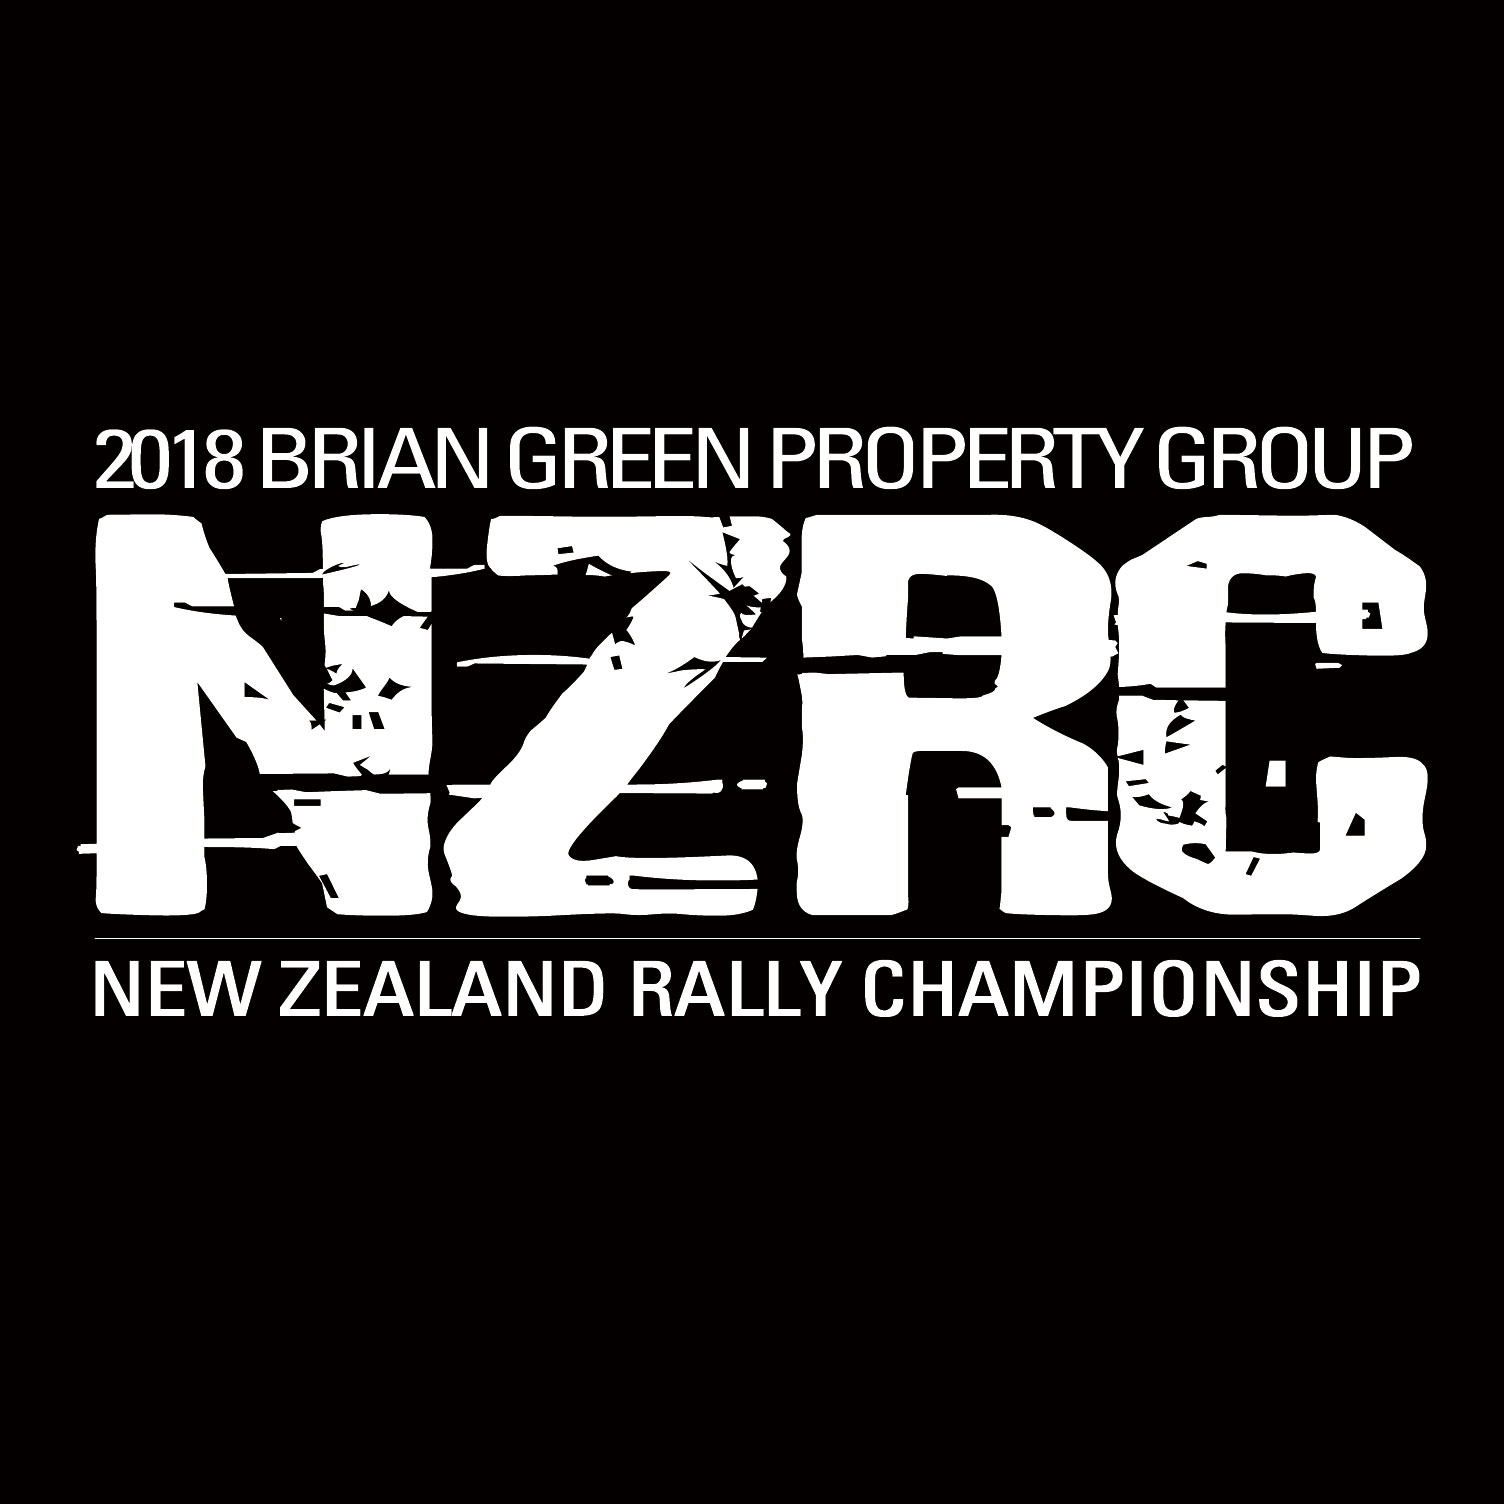 Campbell looks for Coromandel repeat | :: Brian Green Property Group New Zealand Rally Championship ::